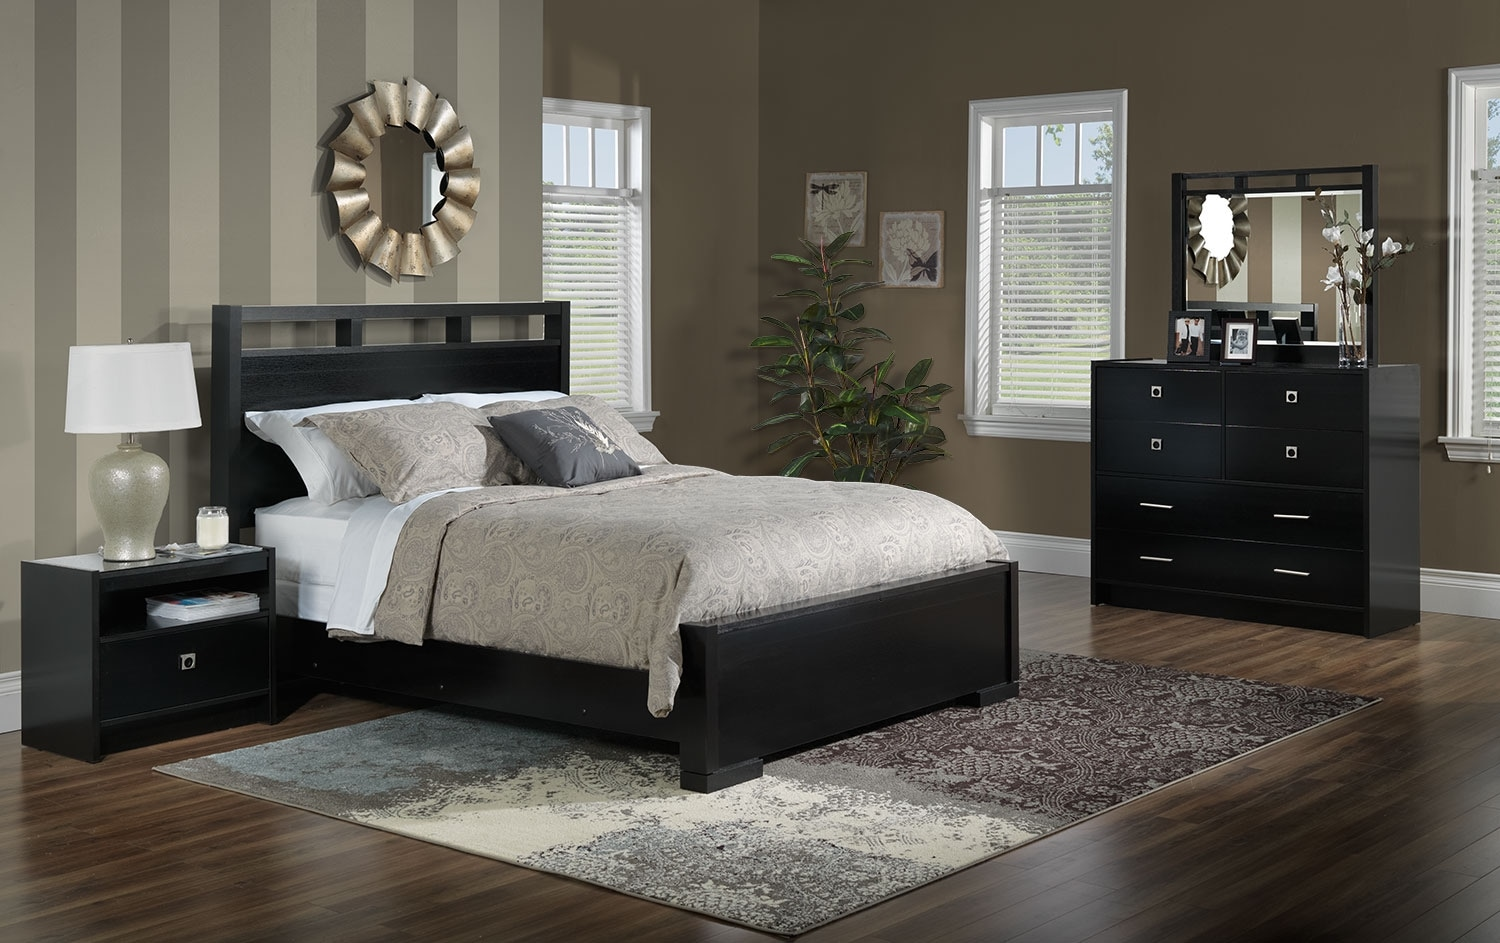 Bedroom Furniture - Altissa 5-Piece Queen Bedroom Set - Espresso